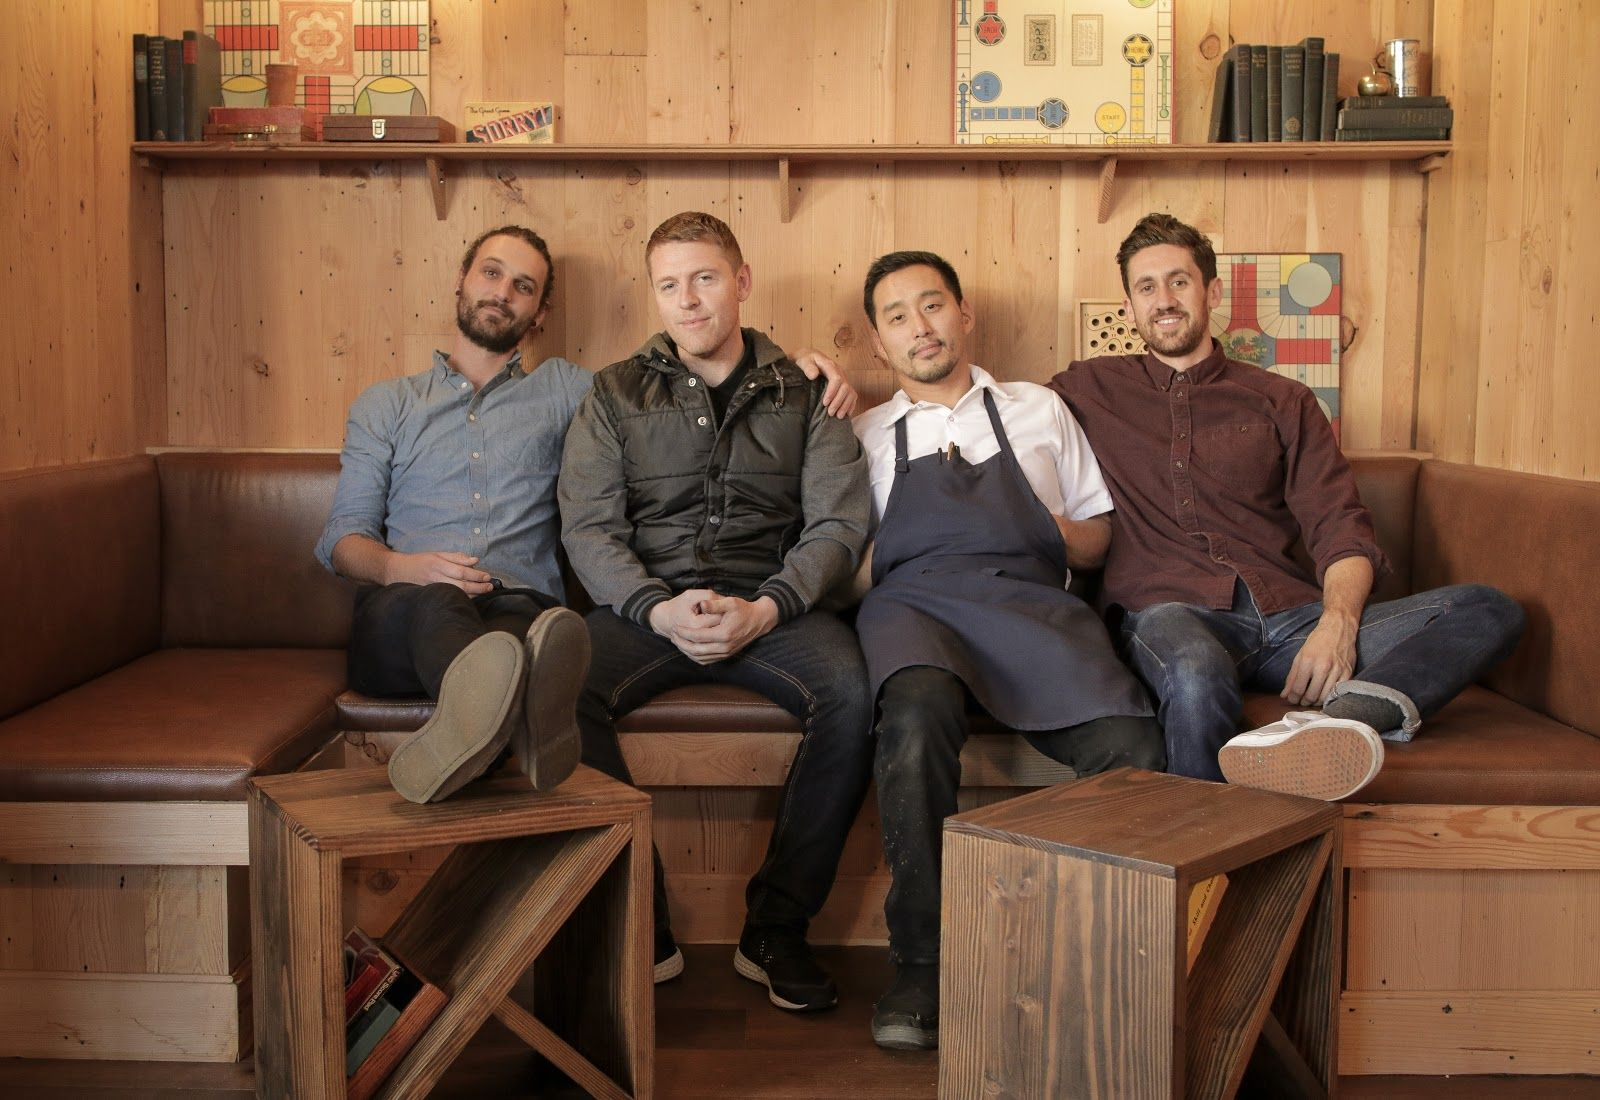 How The Snug Took Control of Labor and Evolved Their Restaurant